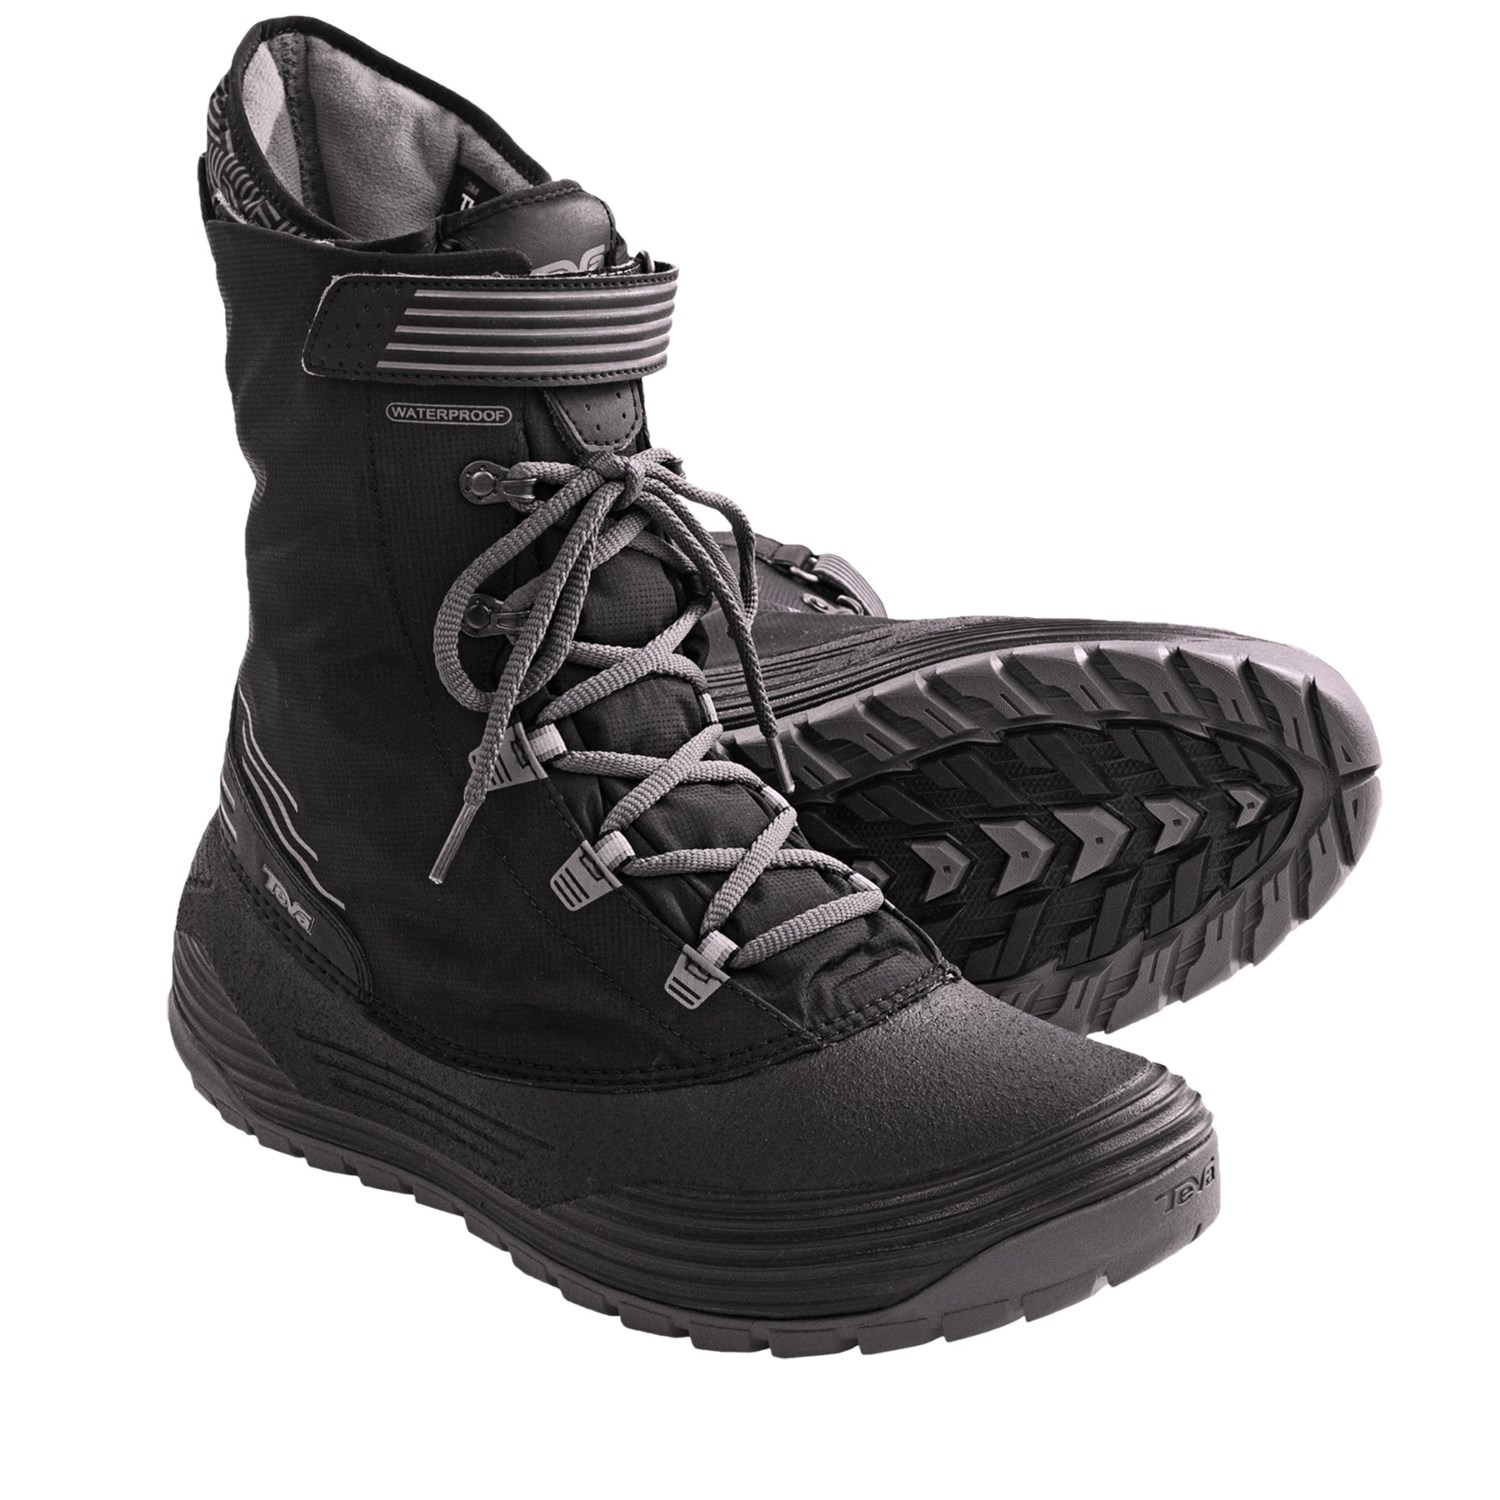 Mens Winter Boots Clearance - Cr Boot